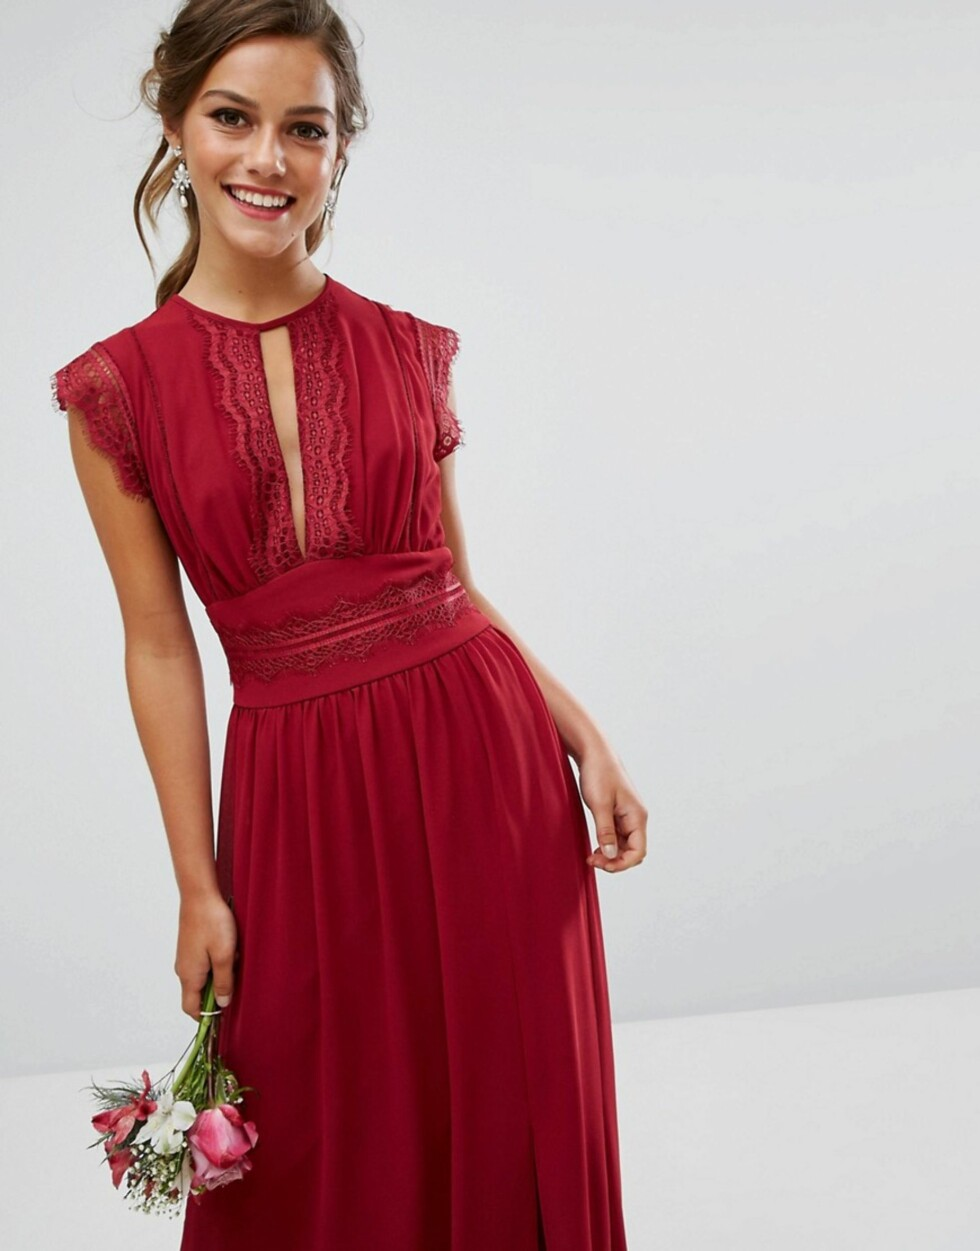 Kjole fra TFNC via Asos.com |872,-| http://www.asos.com/tfnc-tall/tfnc-tall-wedding-lace-detail-maxi-dress/prd/8509778?CTAref=We%20Recommend%20Carousel_5&featureref1=we%20recommend%20pers